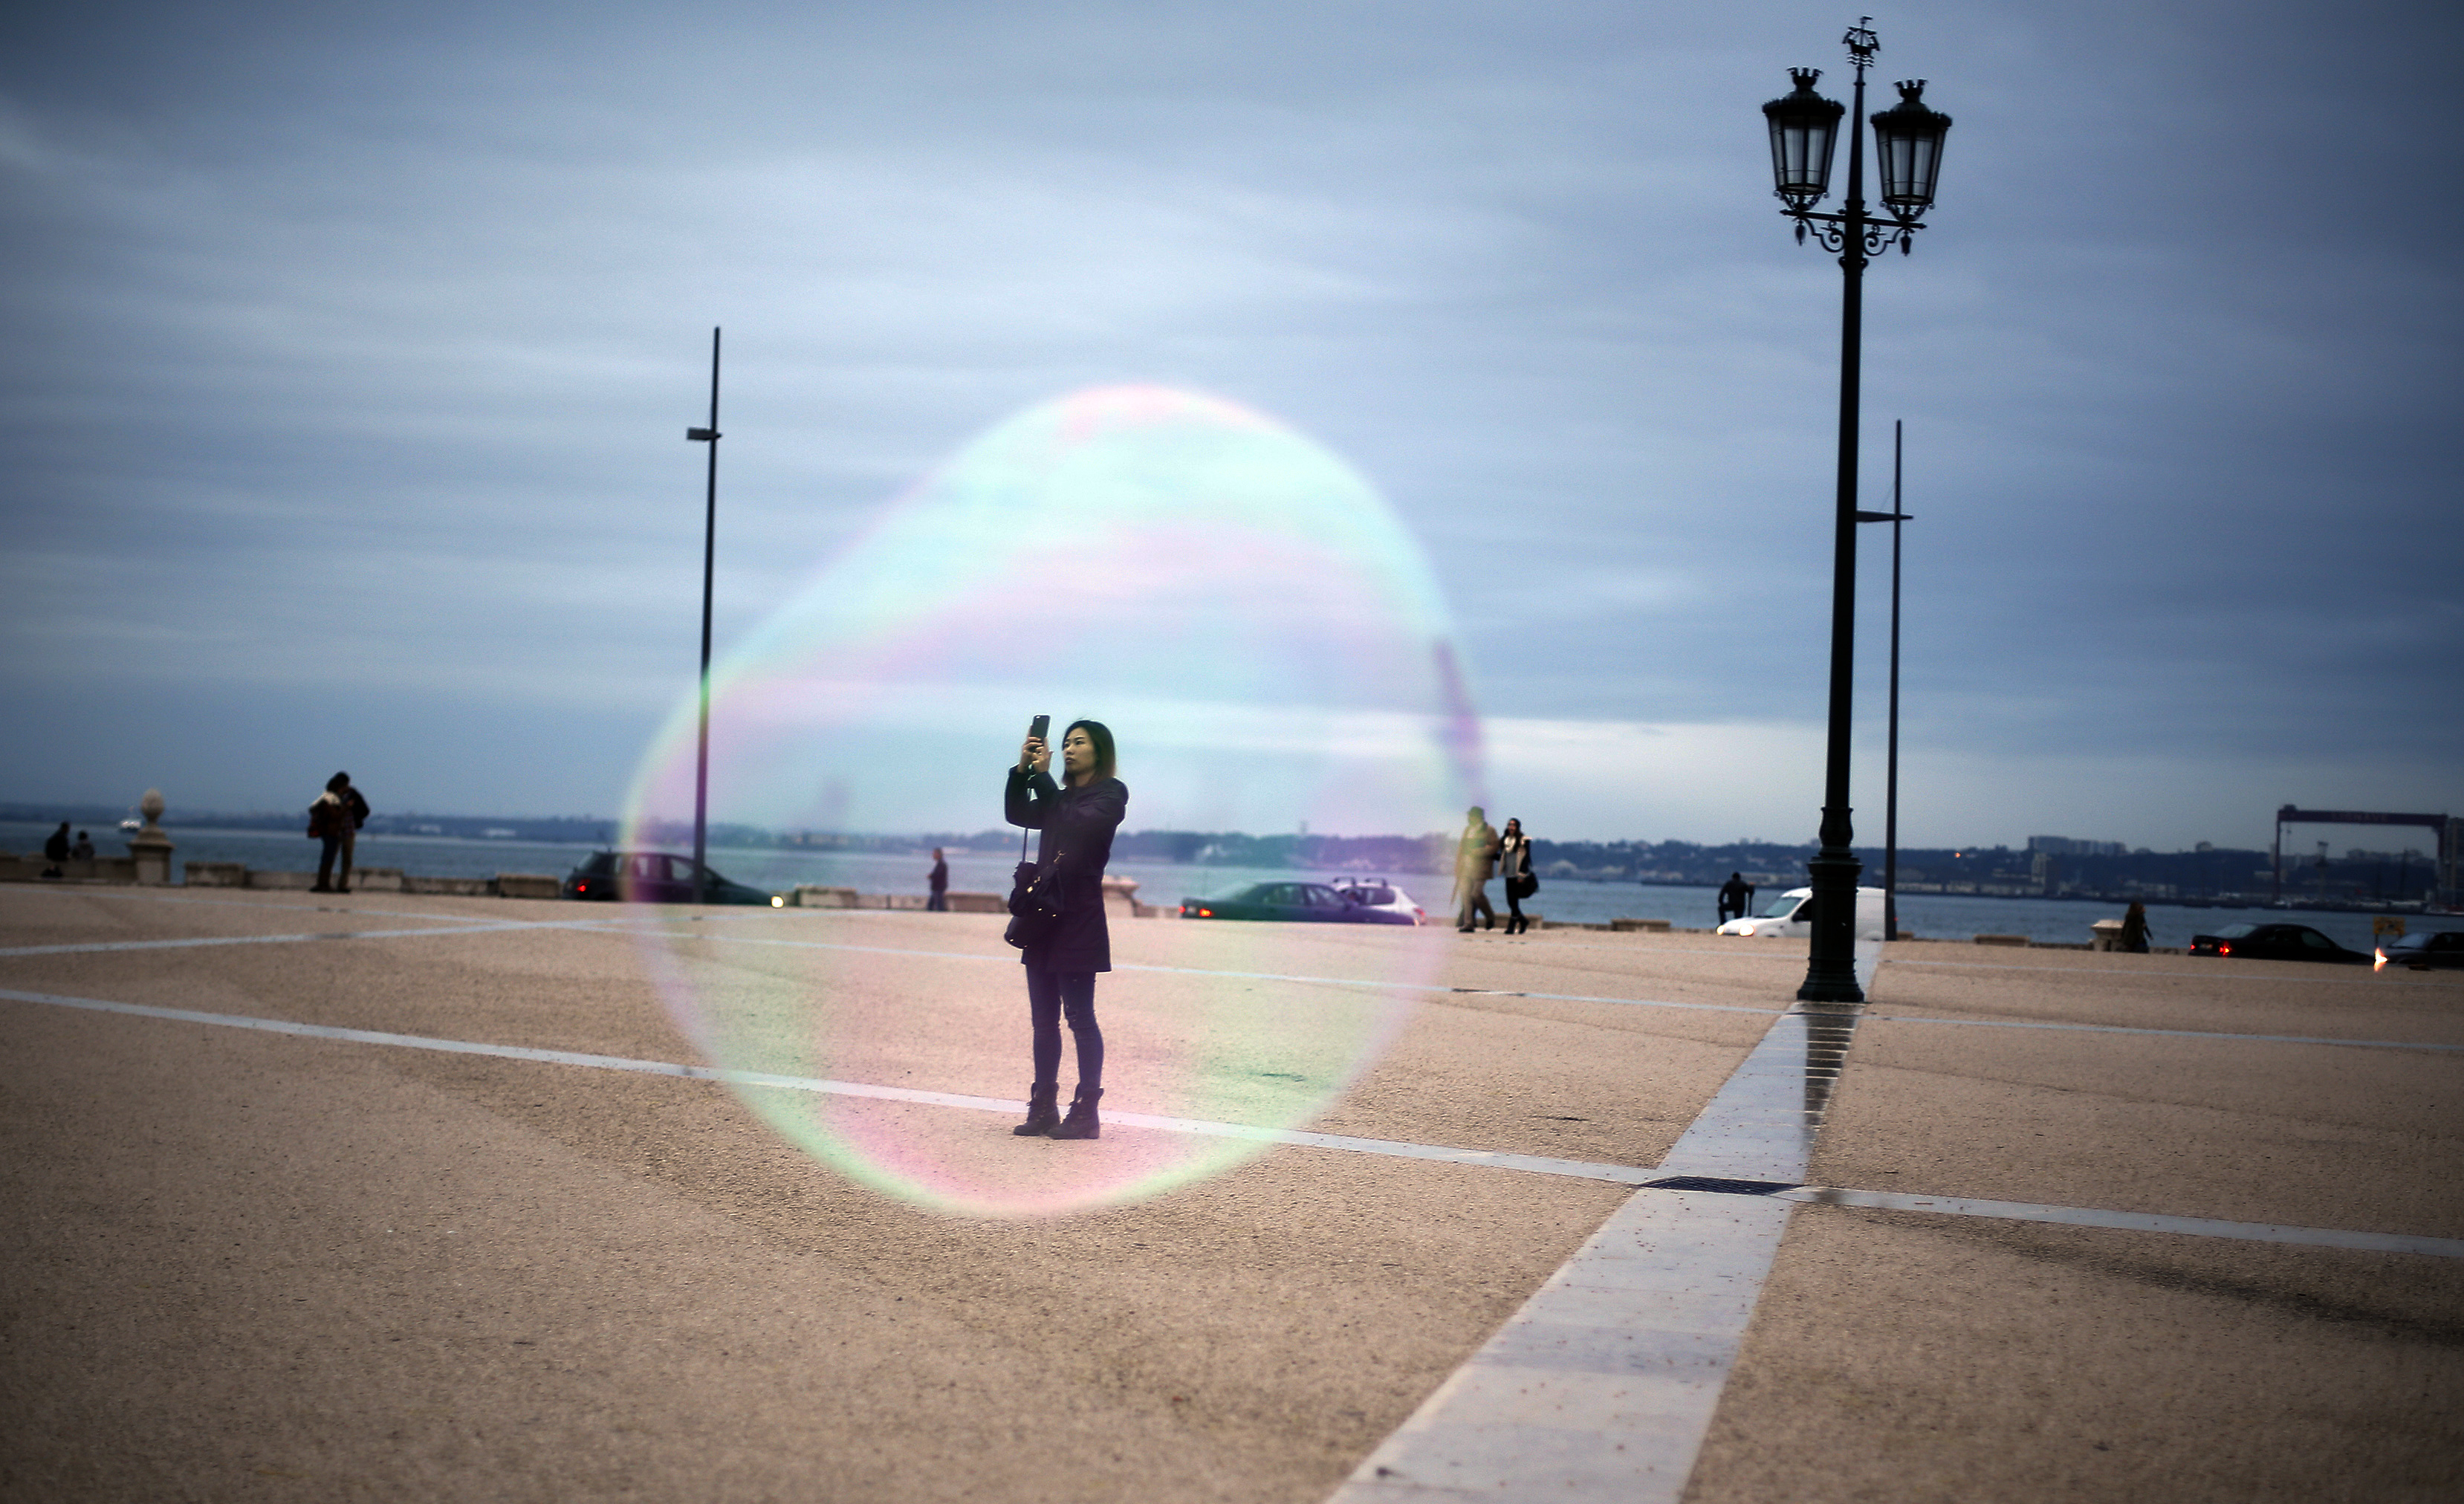 A tourist is seen through a soap bubble as she takes a picture at Comercio square in downtown Lisbon November 18, 2014.  REUTERS/Rafael Marchante (PORTUGAL - Tags: SOCIETY TPX IMAGES OF THE DAY) - RTR4EN2S